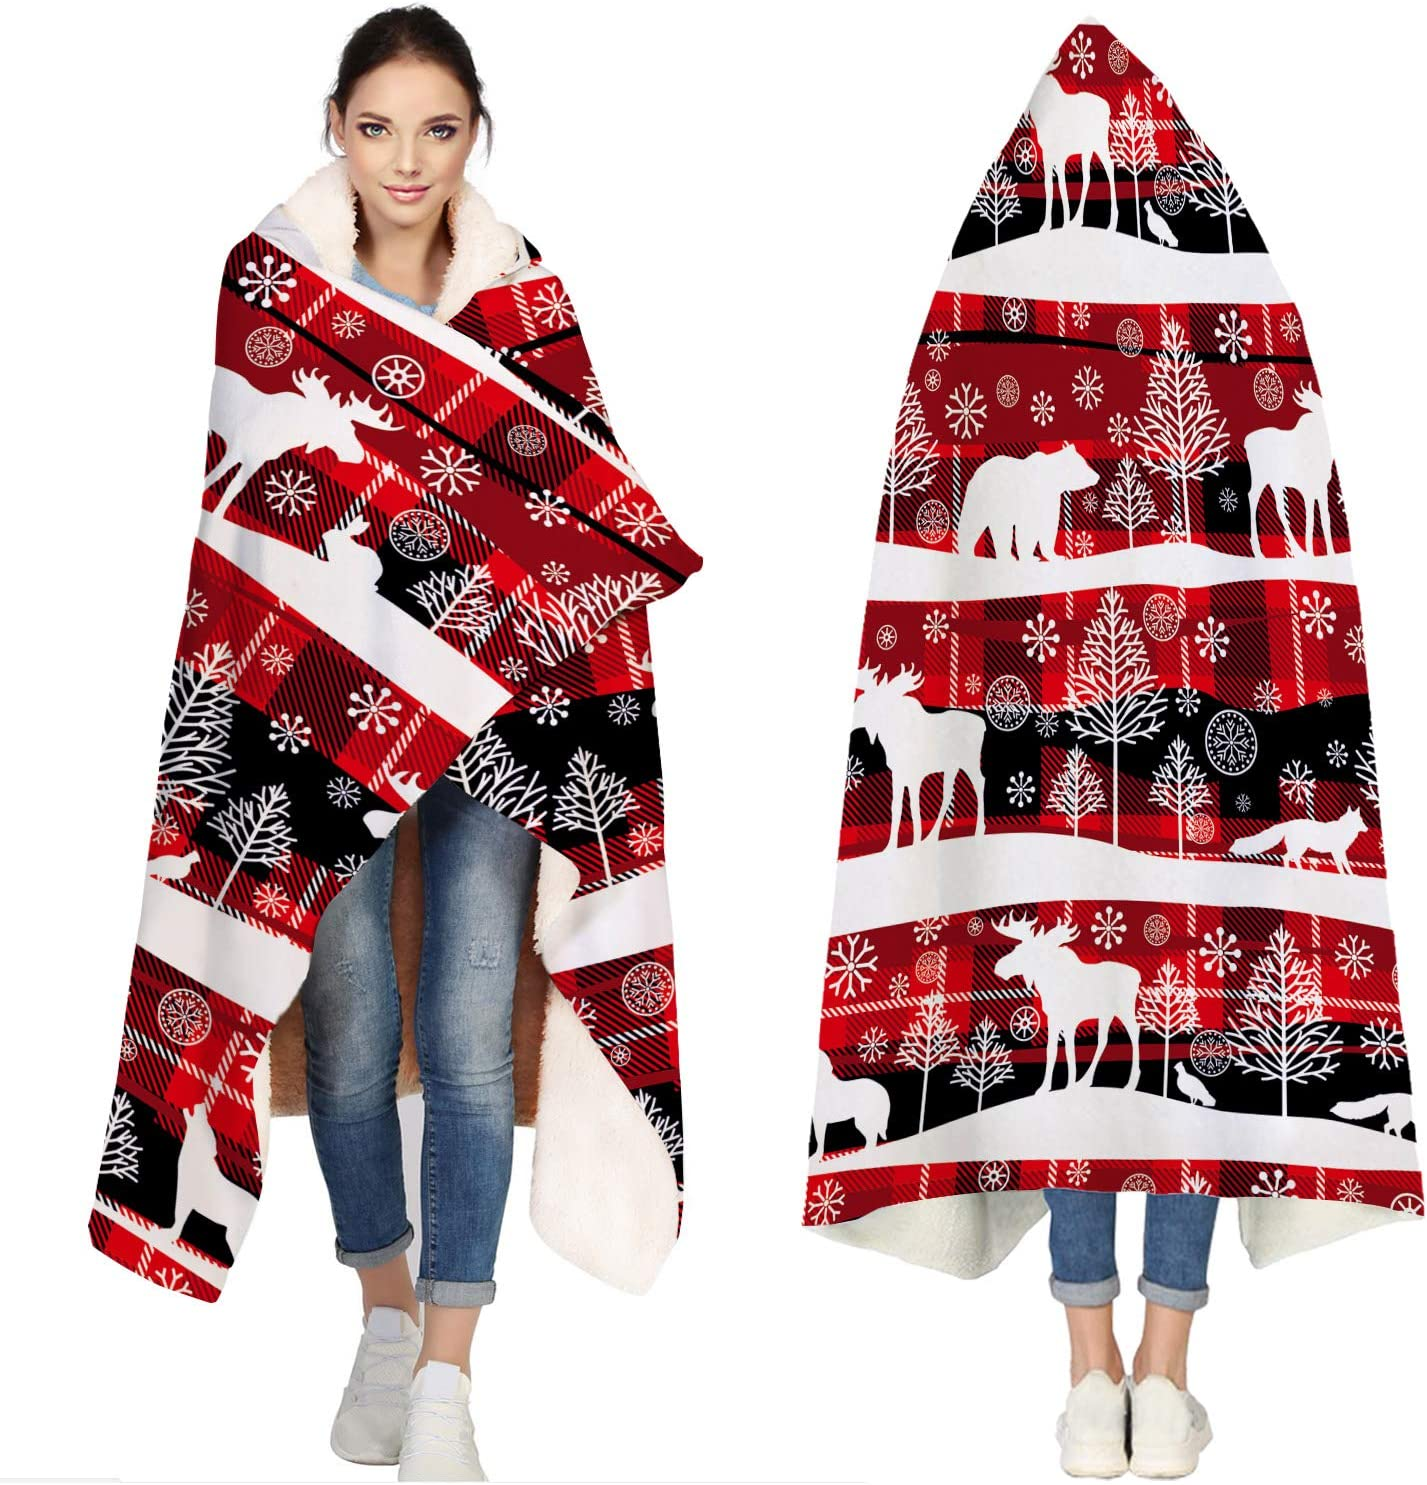 Max 48% OFF Hooded Blanket Throw Wearable Cuddle Sales Winter Christmas Animals De